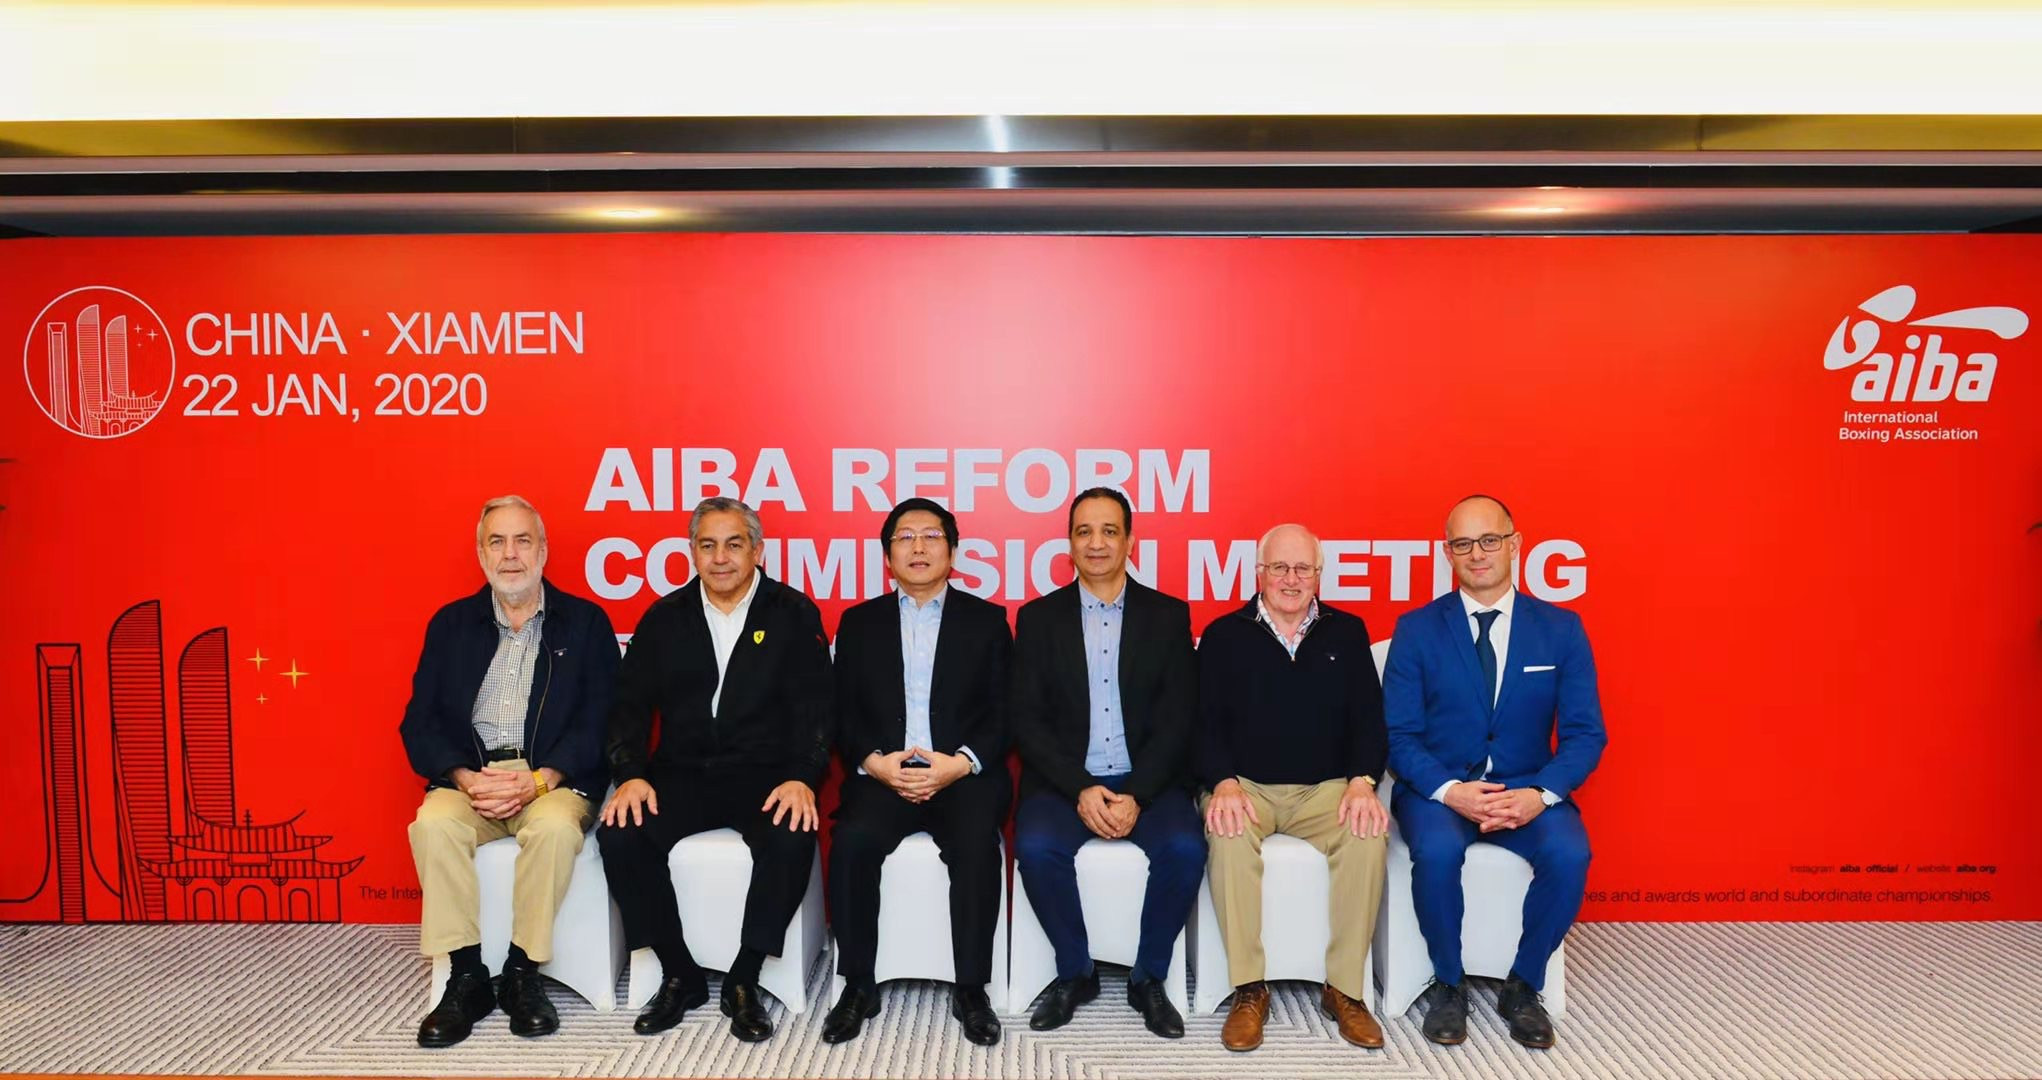 The AIBA Reform Commission,led by China's Wu Di, third left, will present its proposals to the Executive Committee meeting tomorrow ©AIBA